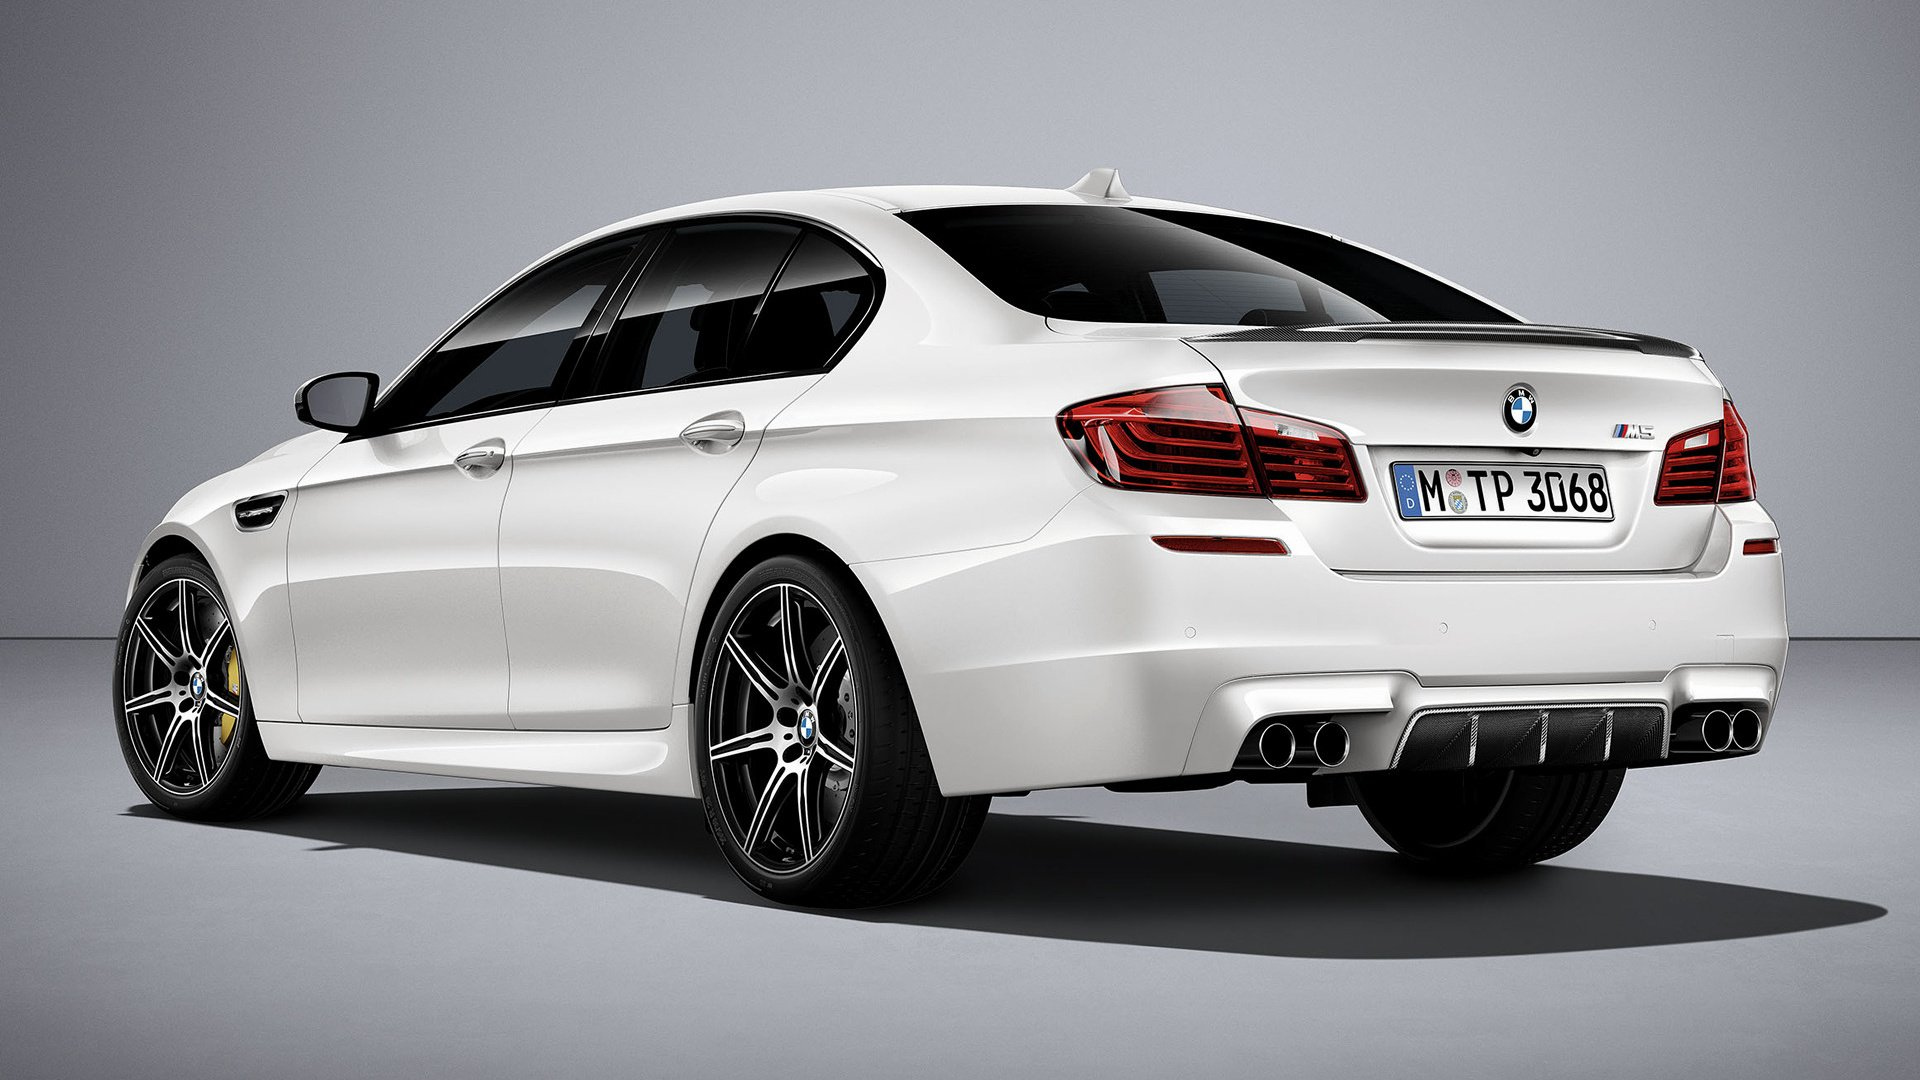 2016 Bmw M5 Competition Edition Hd Wallpaper Background Image 1920x1080 Id 883209 Wallpaper Abyss